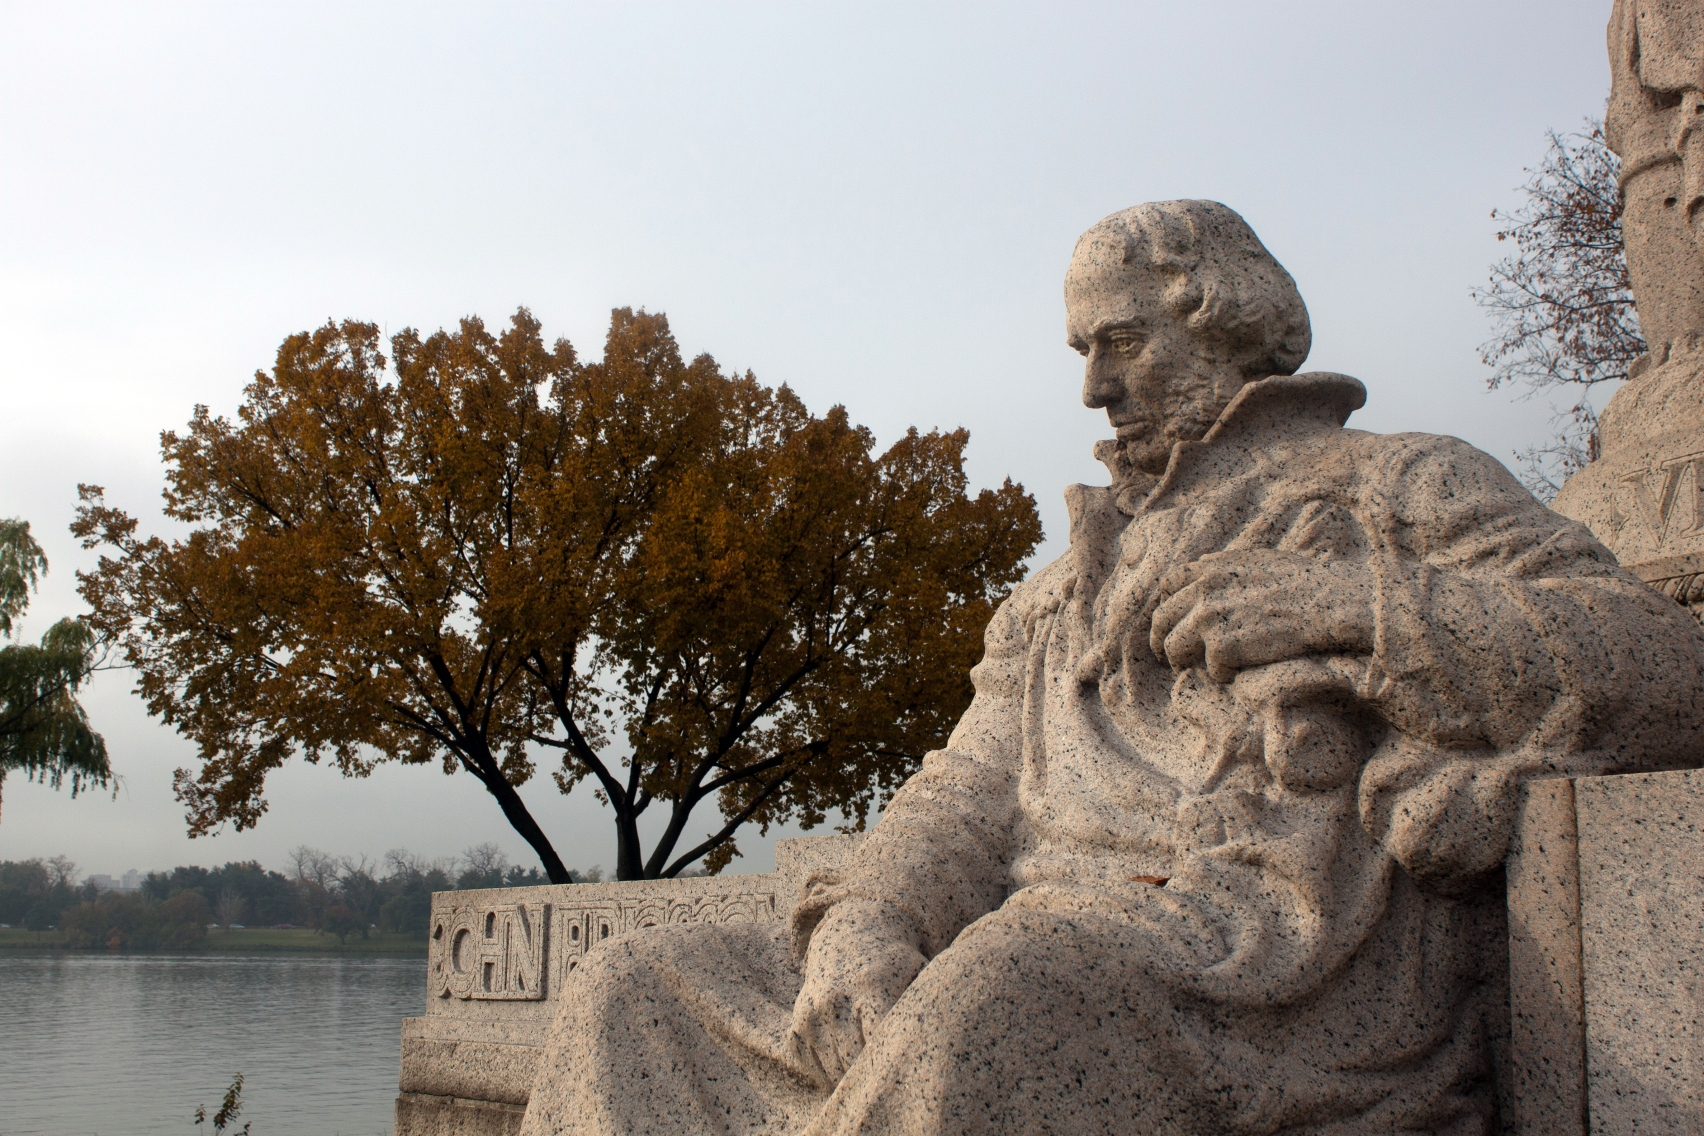 John Ericsson Memorial, sculpted by James Earle Fraser from pink Milford granite. Fraser would create some of the most iconic images of modern time, from the Buffalo nickel, the bronze of General Patton at West Point, the Franklin Memorial in Philadelphia and the Contemplation of Justice atop the Supreme Court Building in Washington.